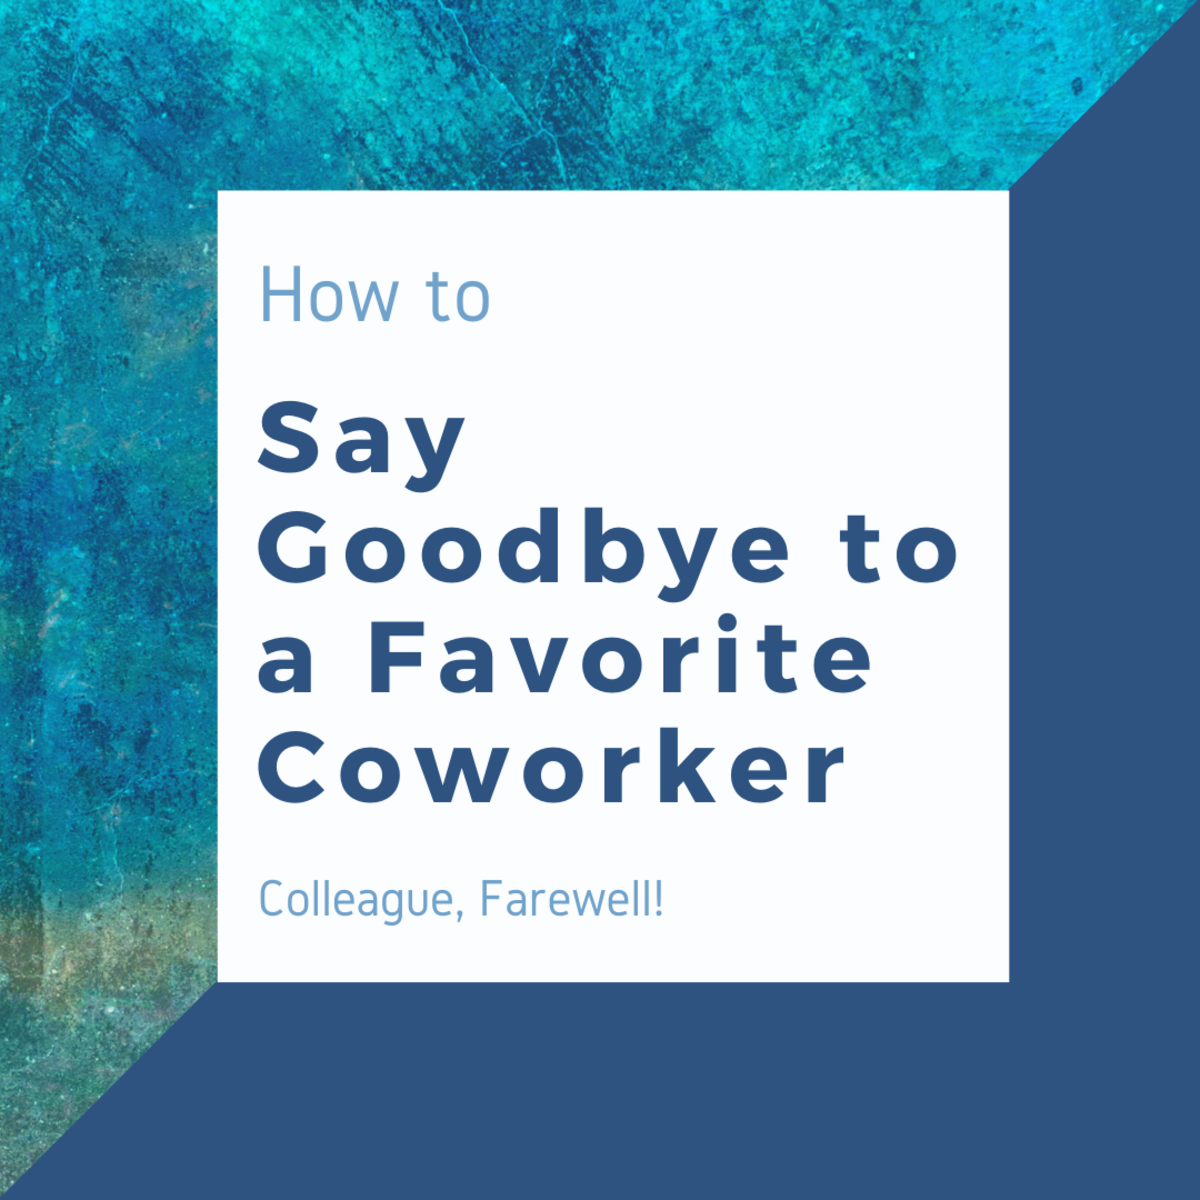 Saying goodbye to a favorite coworker doesn't need to be (that) hard!